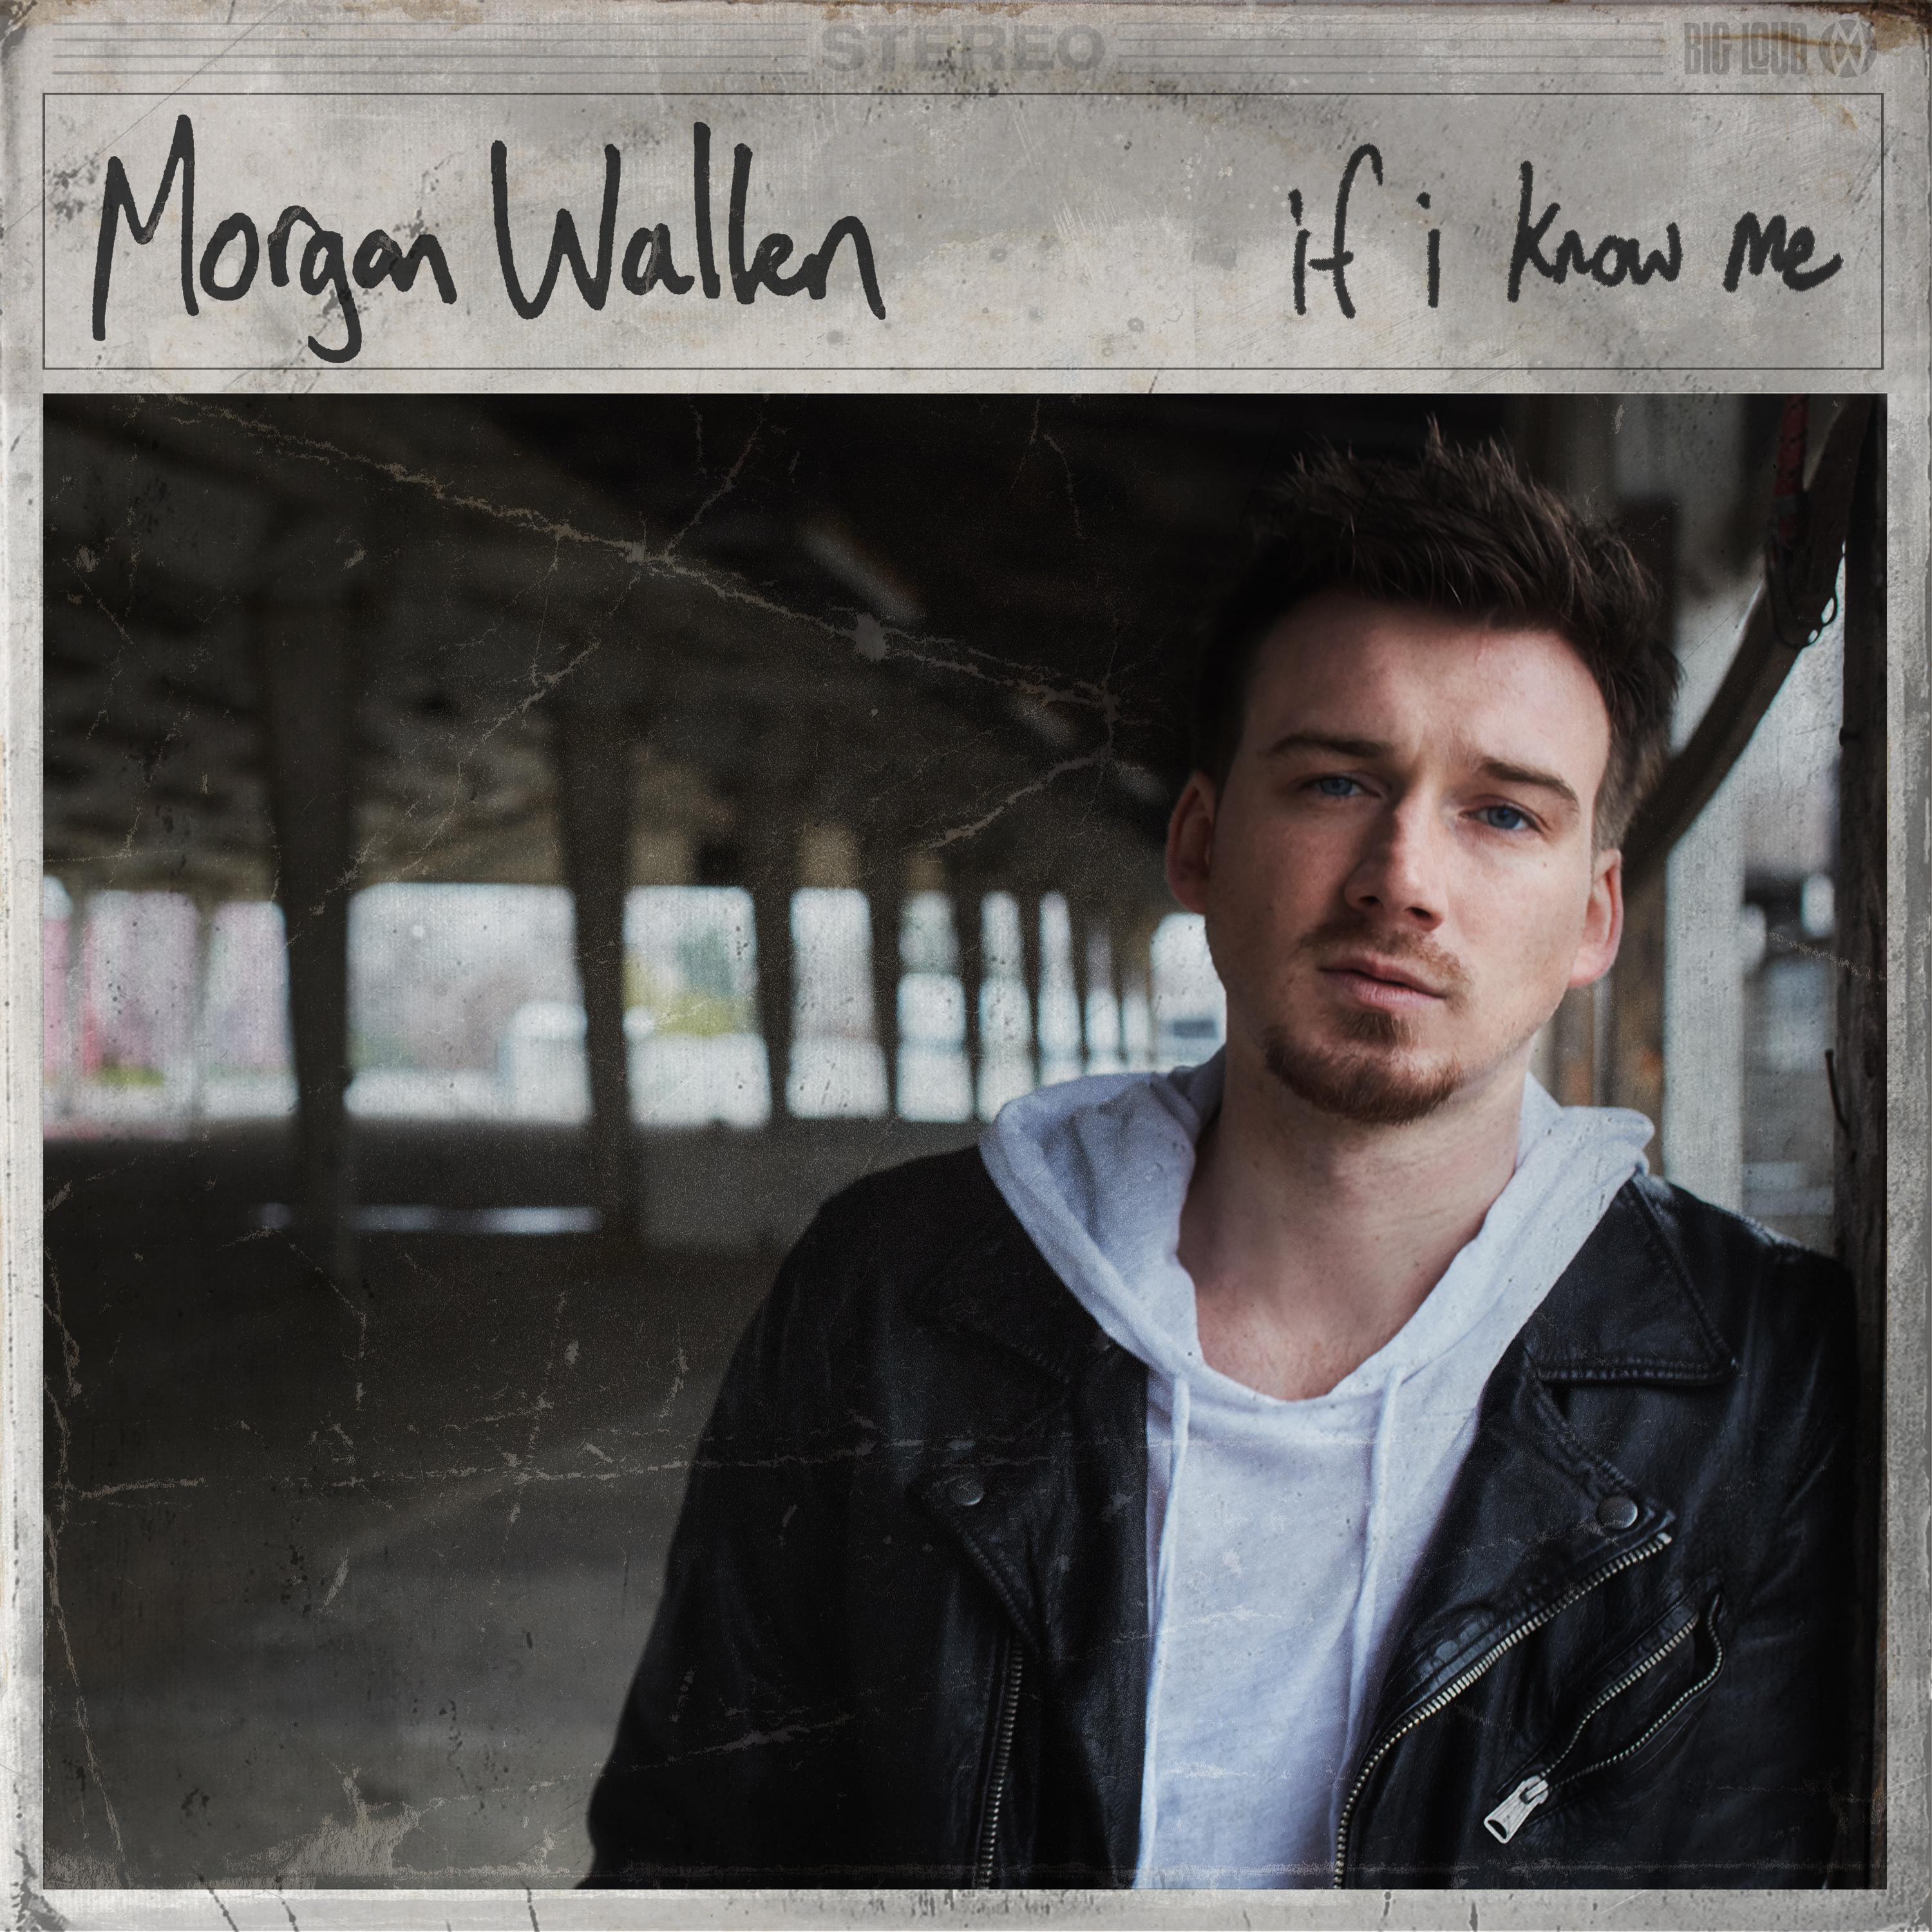 Morgan Wallen Will Debut If I Know Me Album Sounds Like Nashville